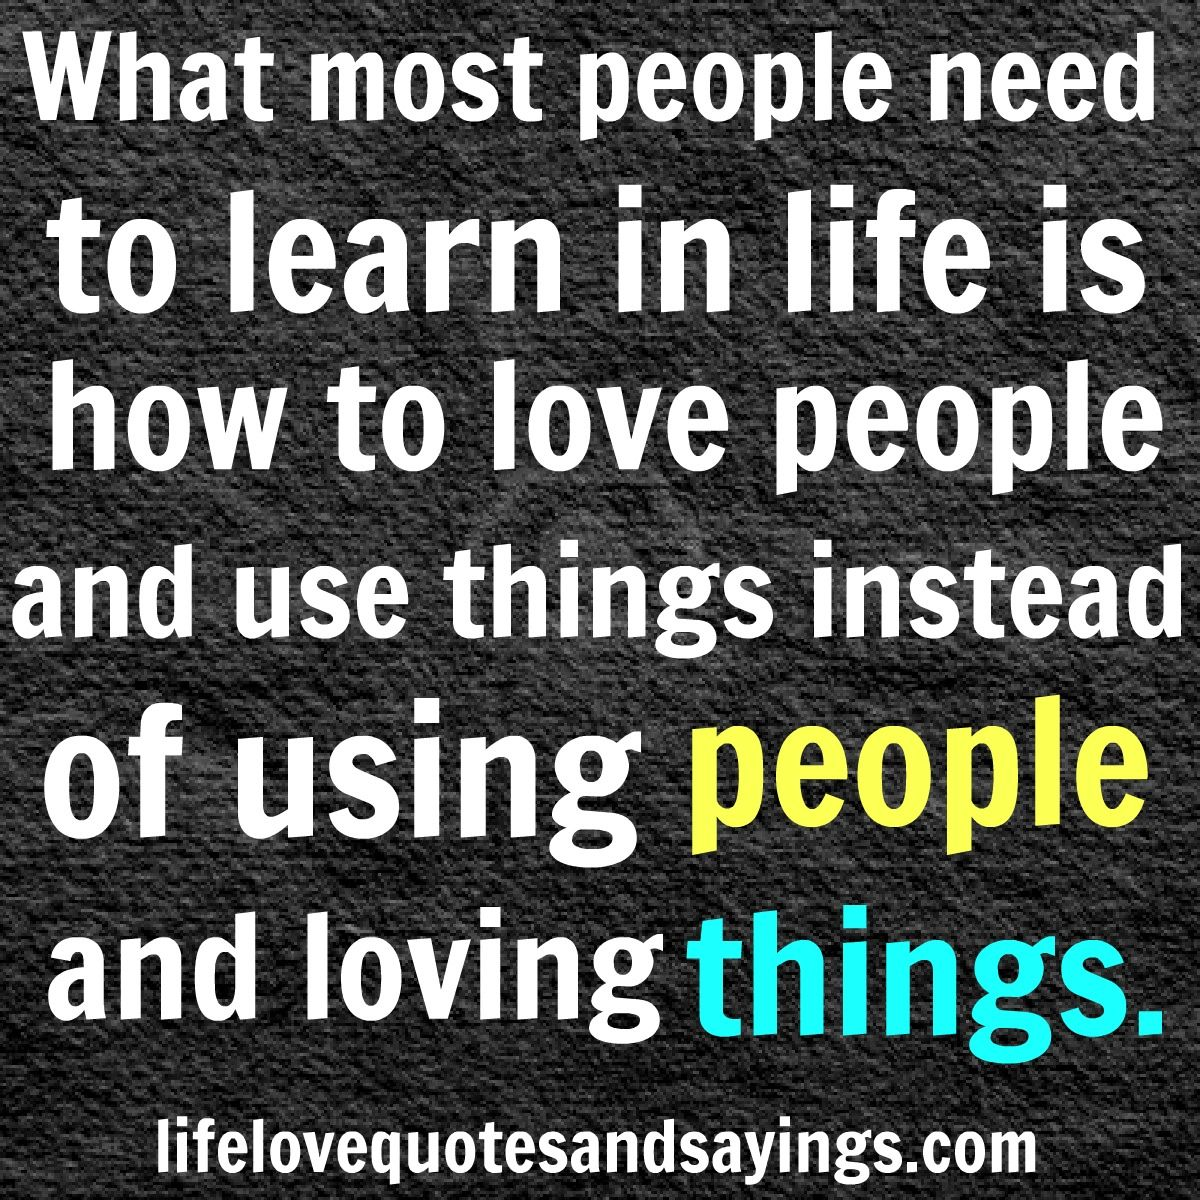 17 Best images about Quotes on Pinterest | Words, Quote life and ...